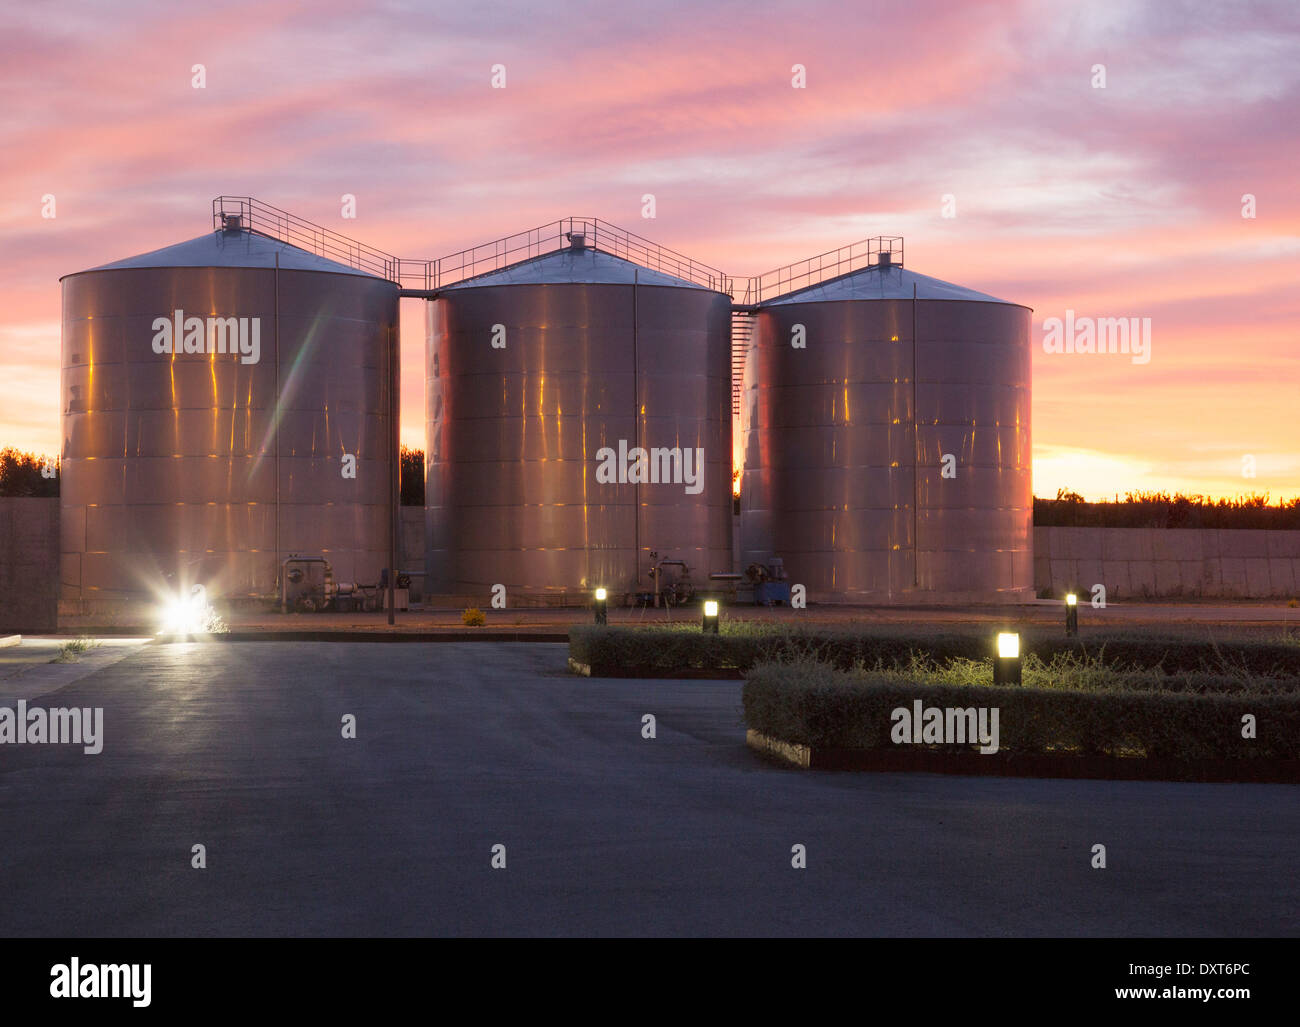 Silage storage towers against dramatic sky Stock Photo